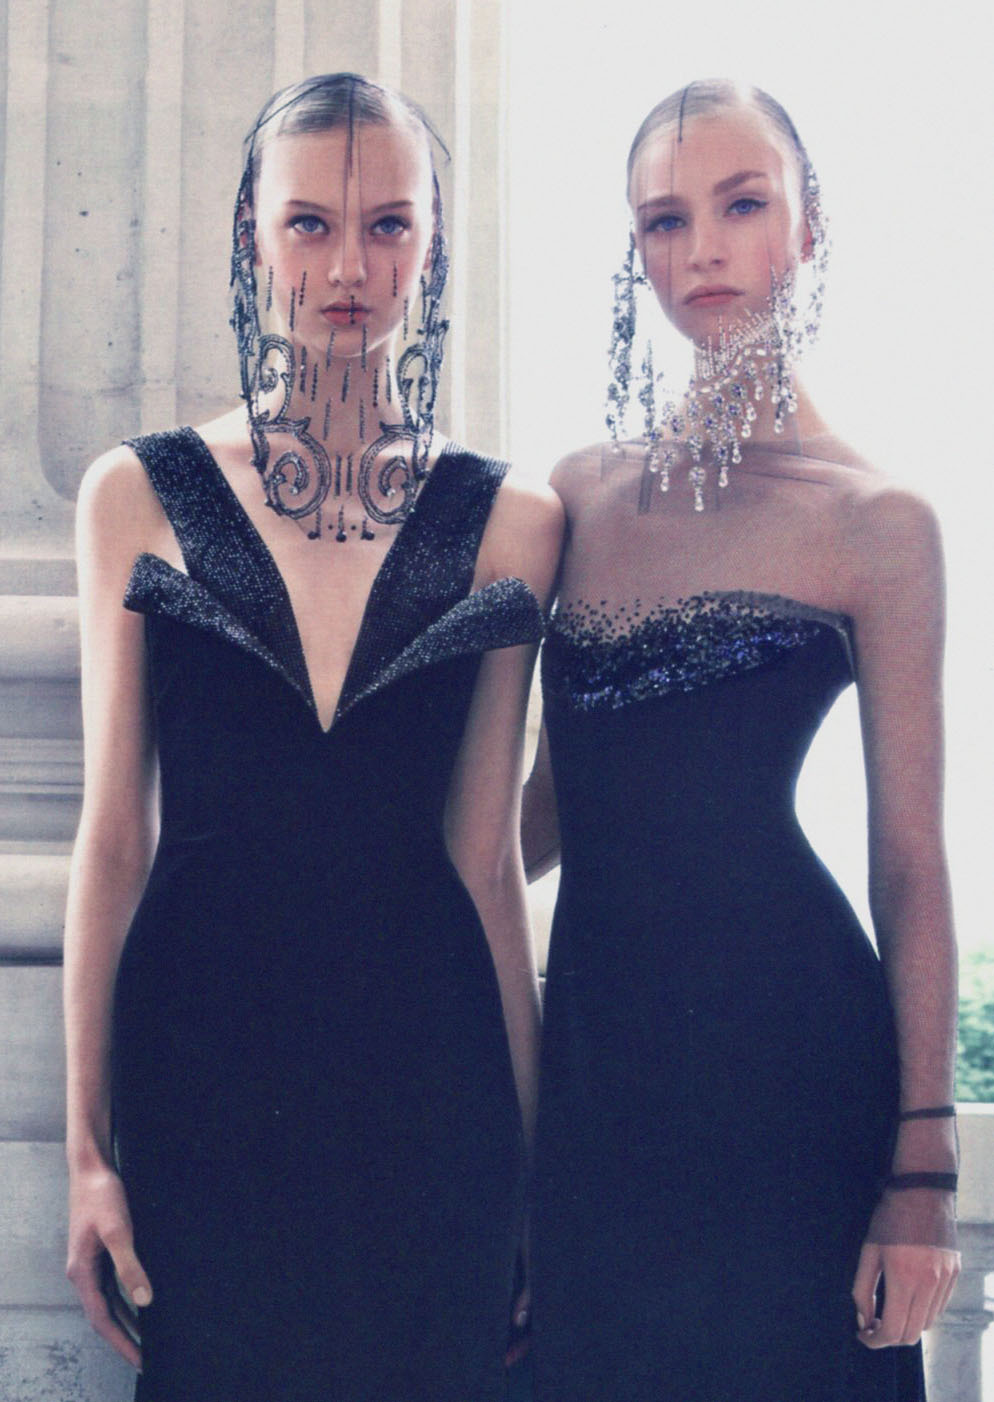 'Simply Elegant' Nastya Kusakina & Hedvig Palm photographed by Patrick Demarchelier for Vogue China Collections, Fall 2012